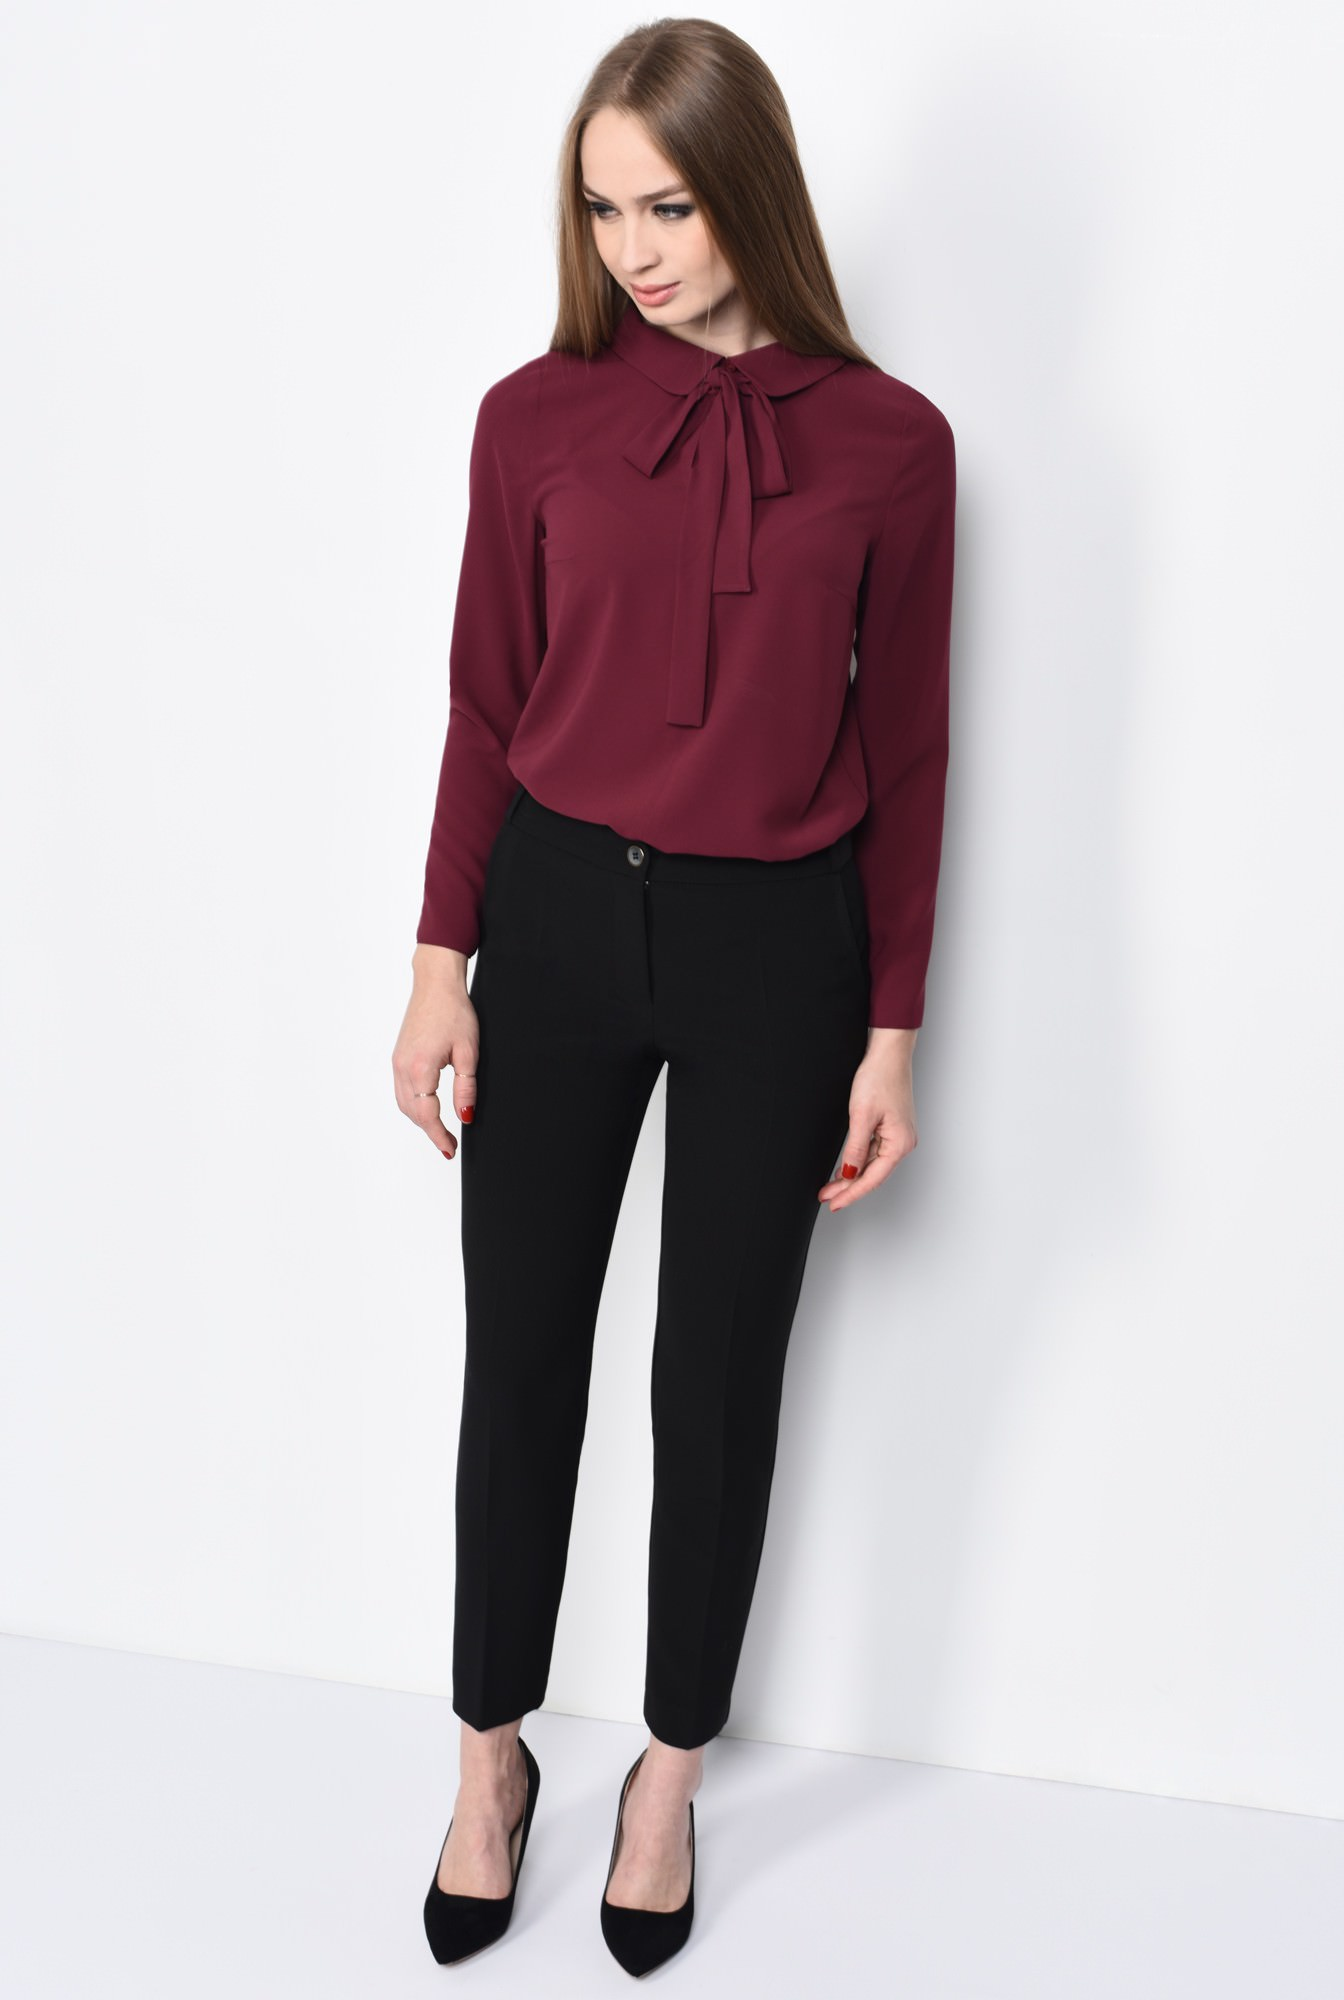 PANTALON OFFICE PT 123-NEGRU